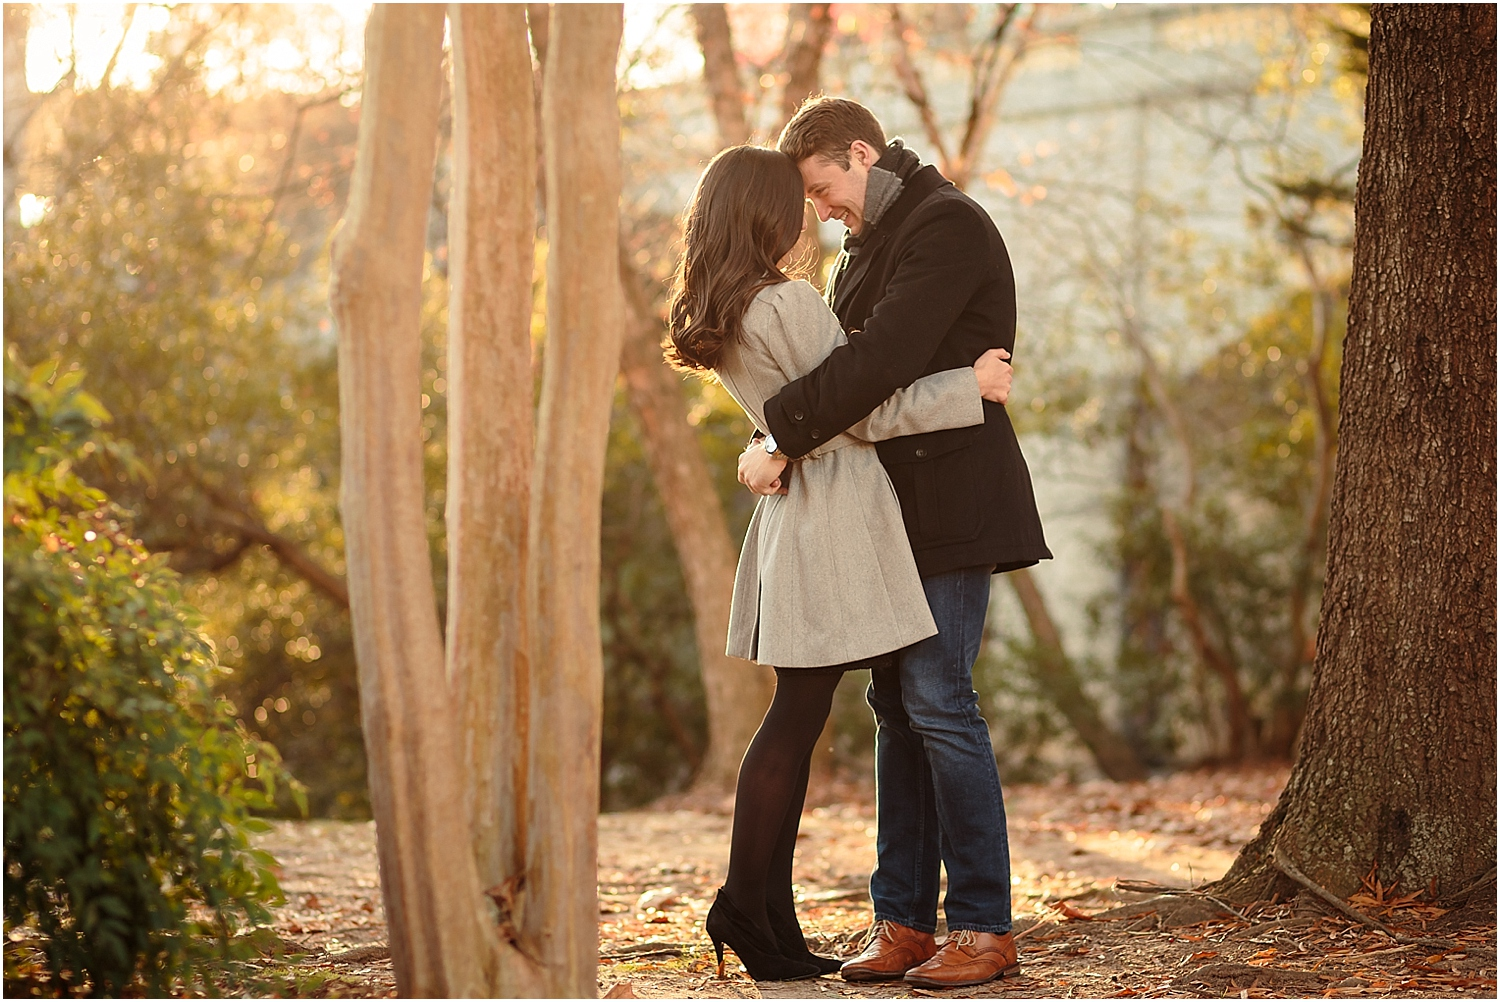 141128--8743Downtown-Greenville-engagement_blog.jpg